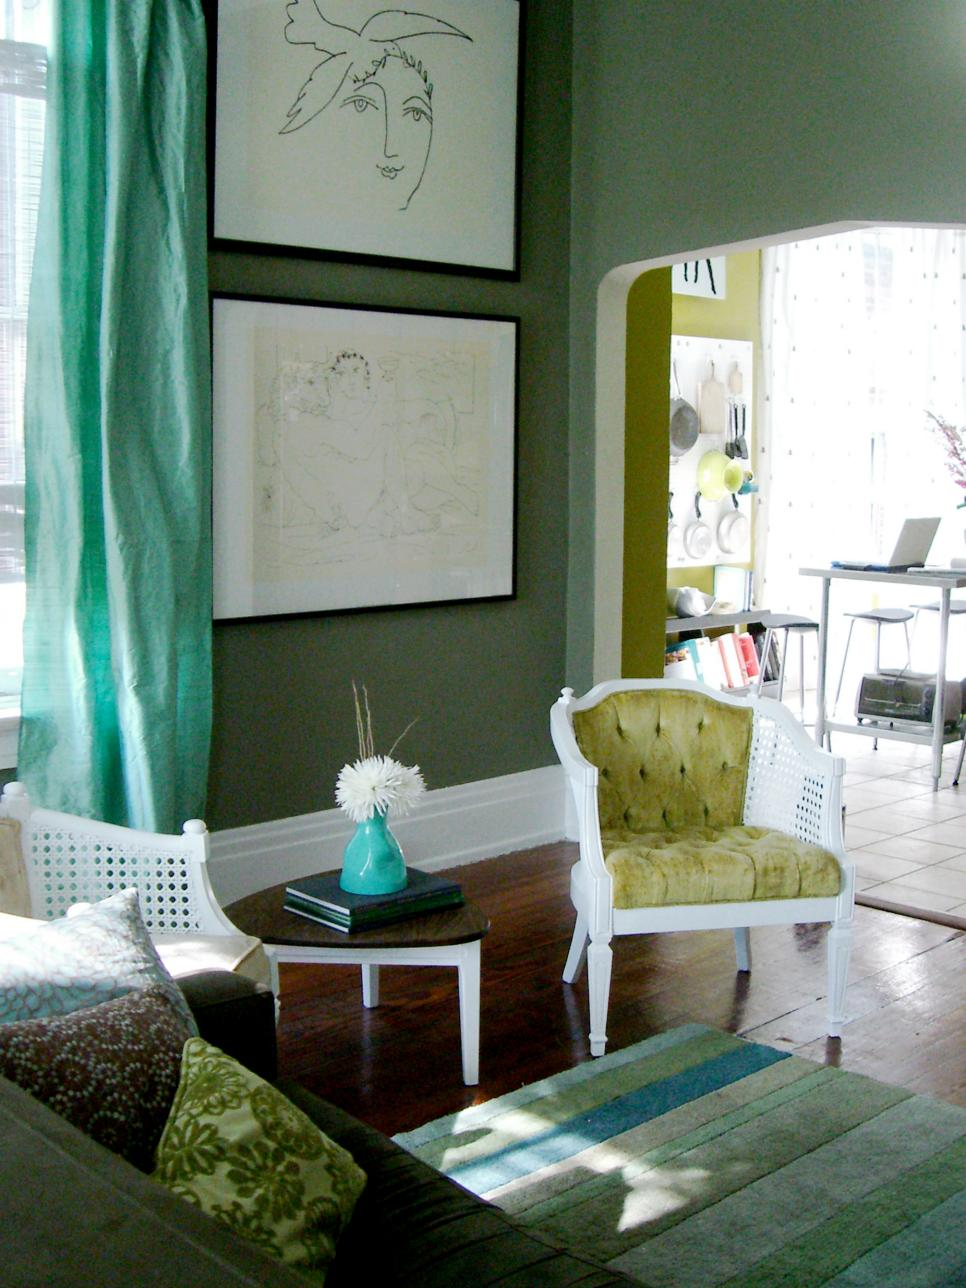 Compact living room paint ideas top living room colors and paint ideas | hgtv bfmknid